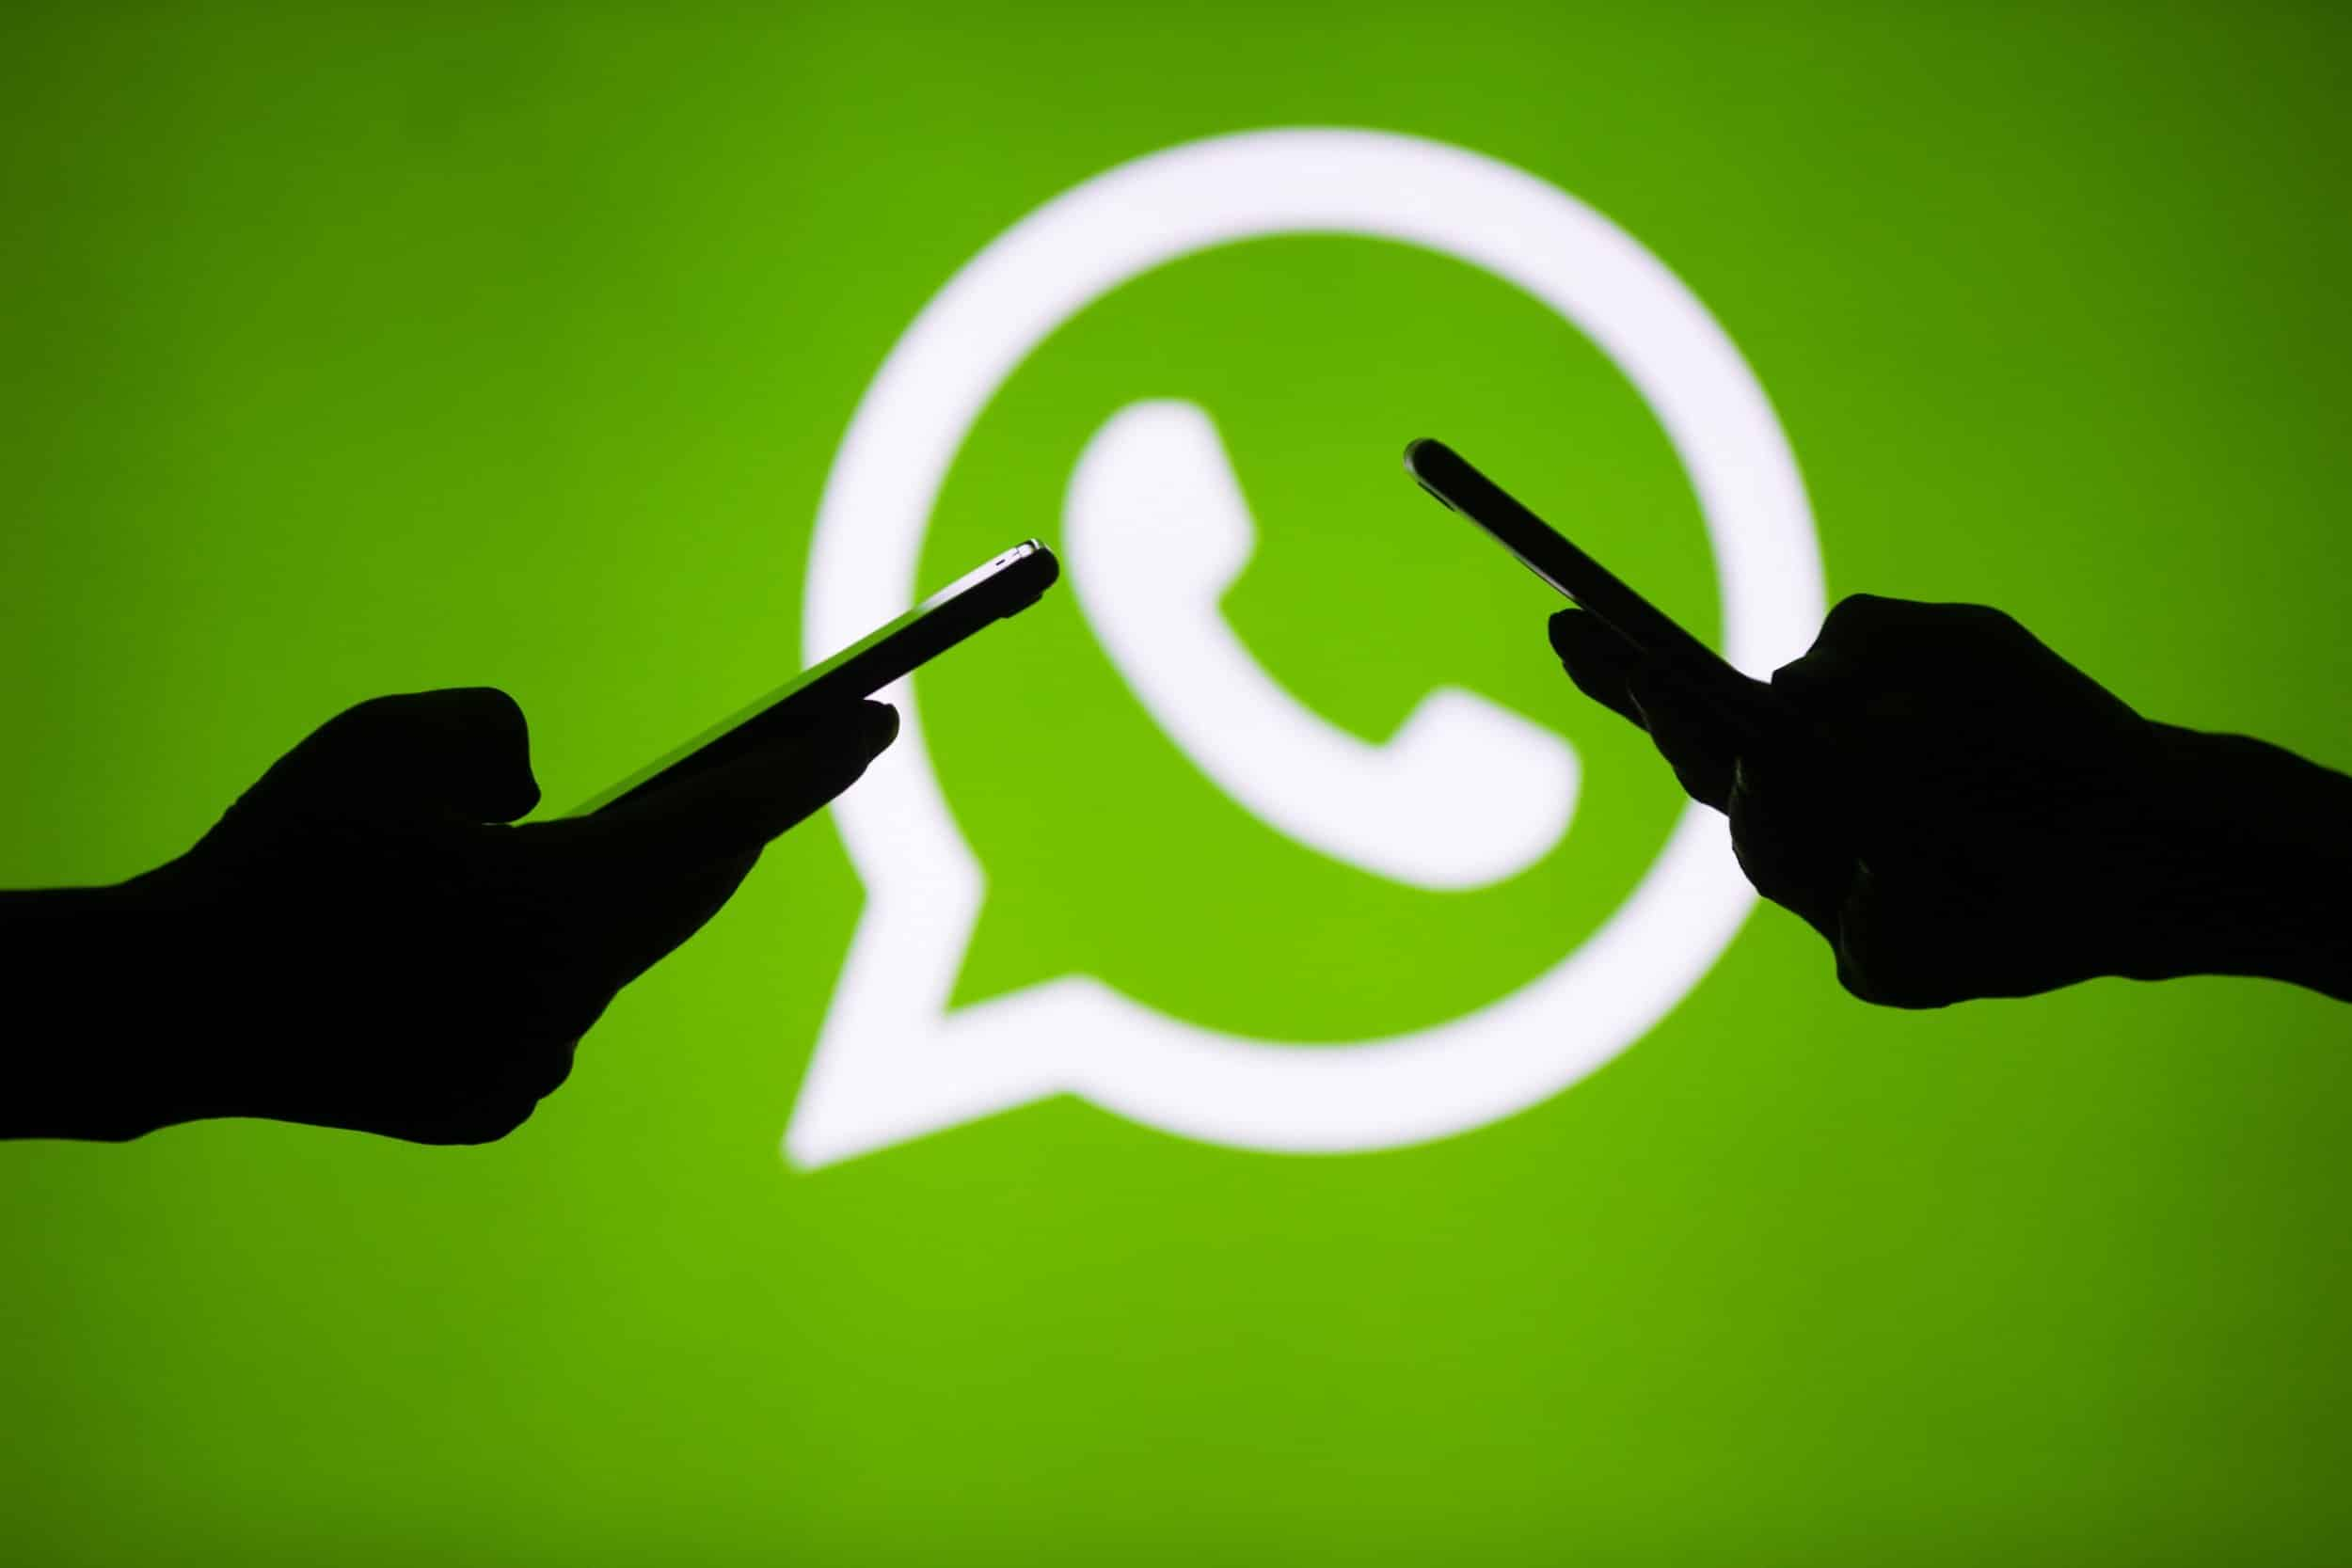 WhatsApp Confirms Cyber Attack Due To Security Flaw